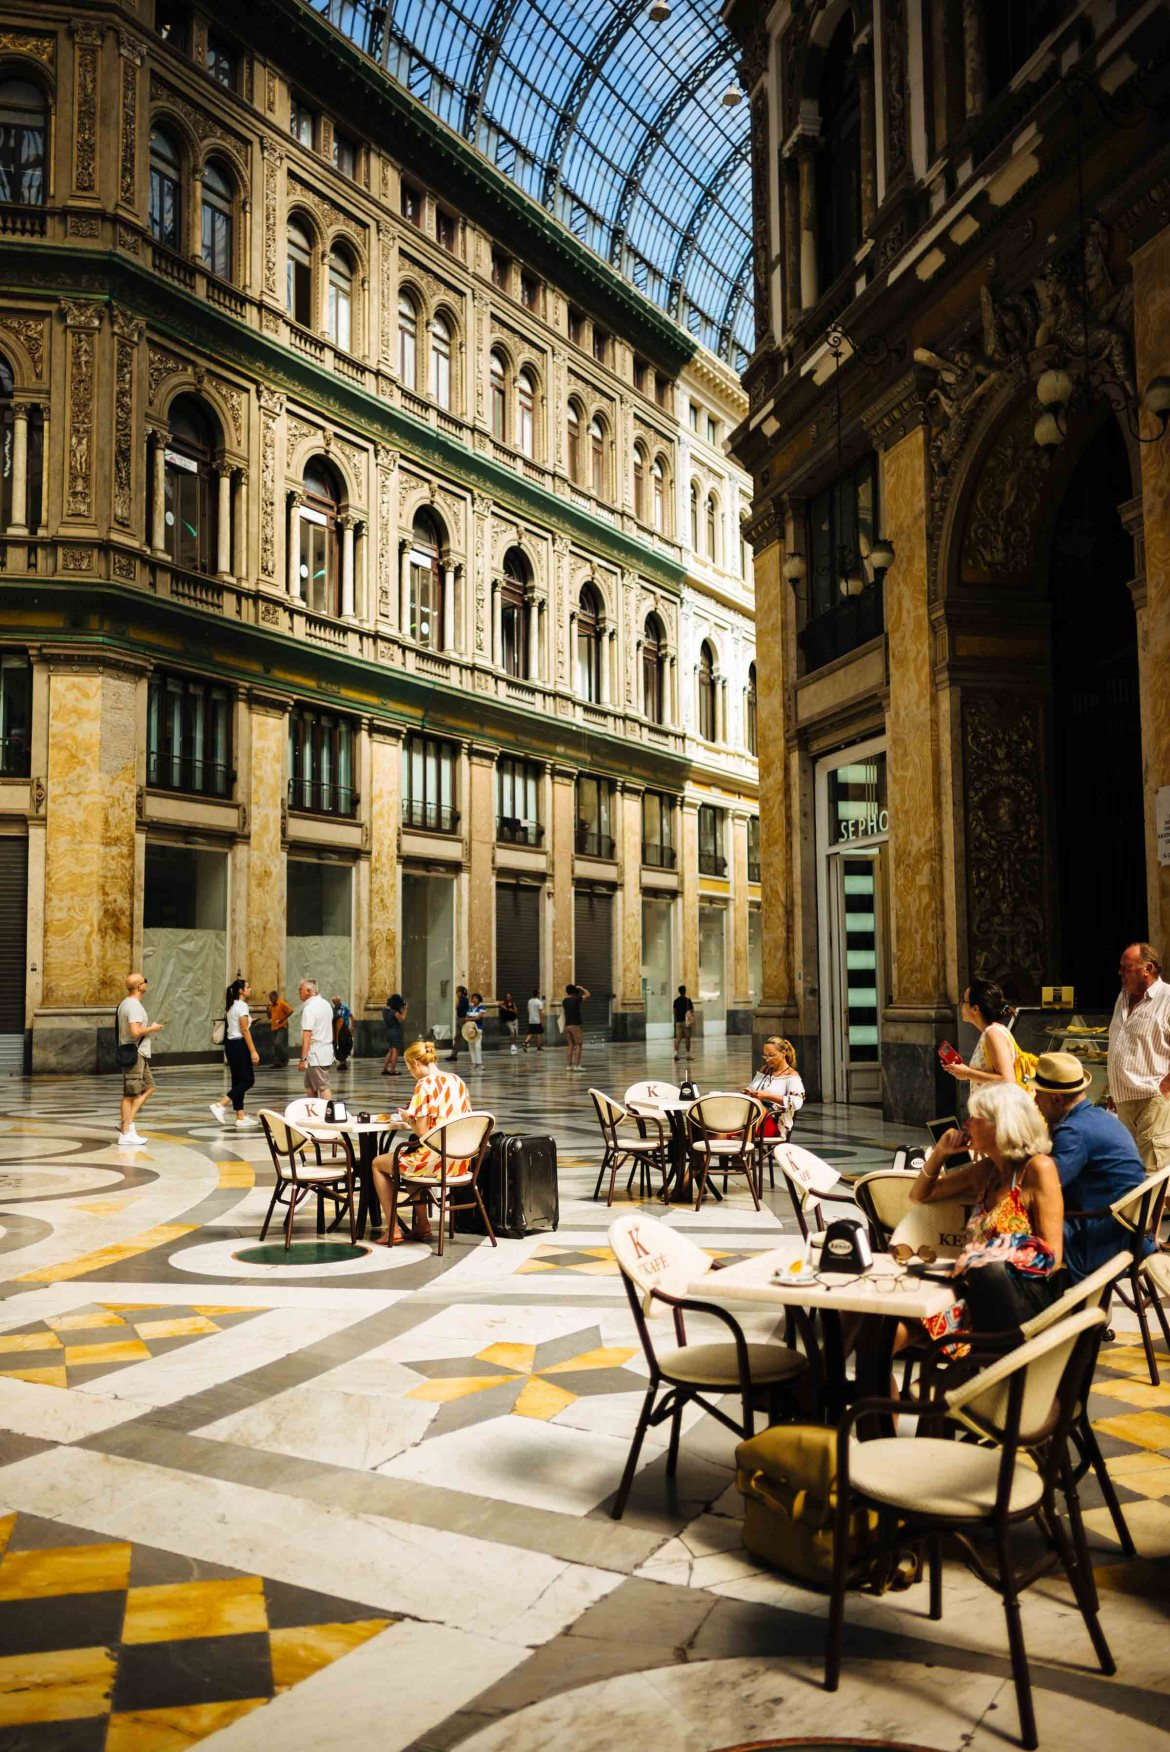 Visit Naples Italy, don't just use it as a jumping off point